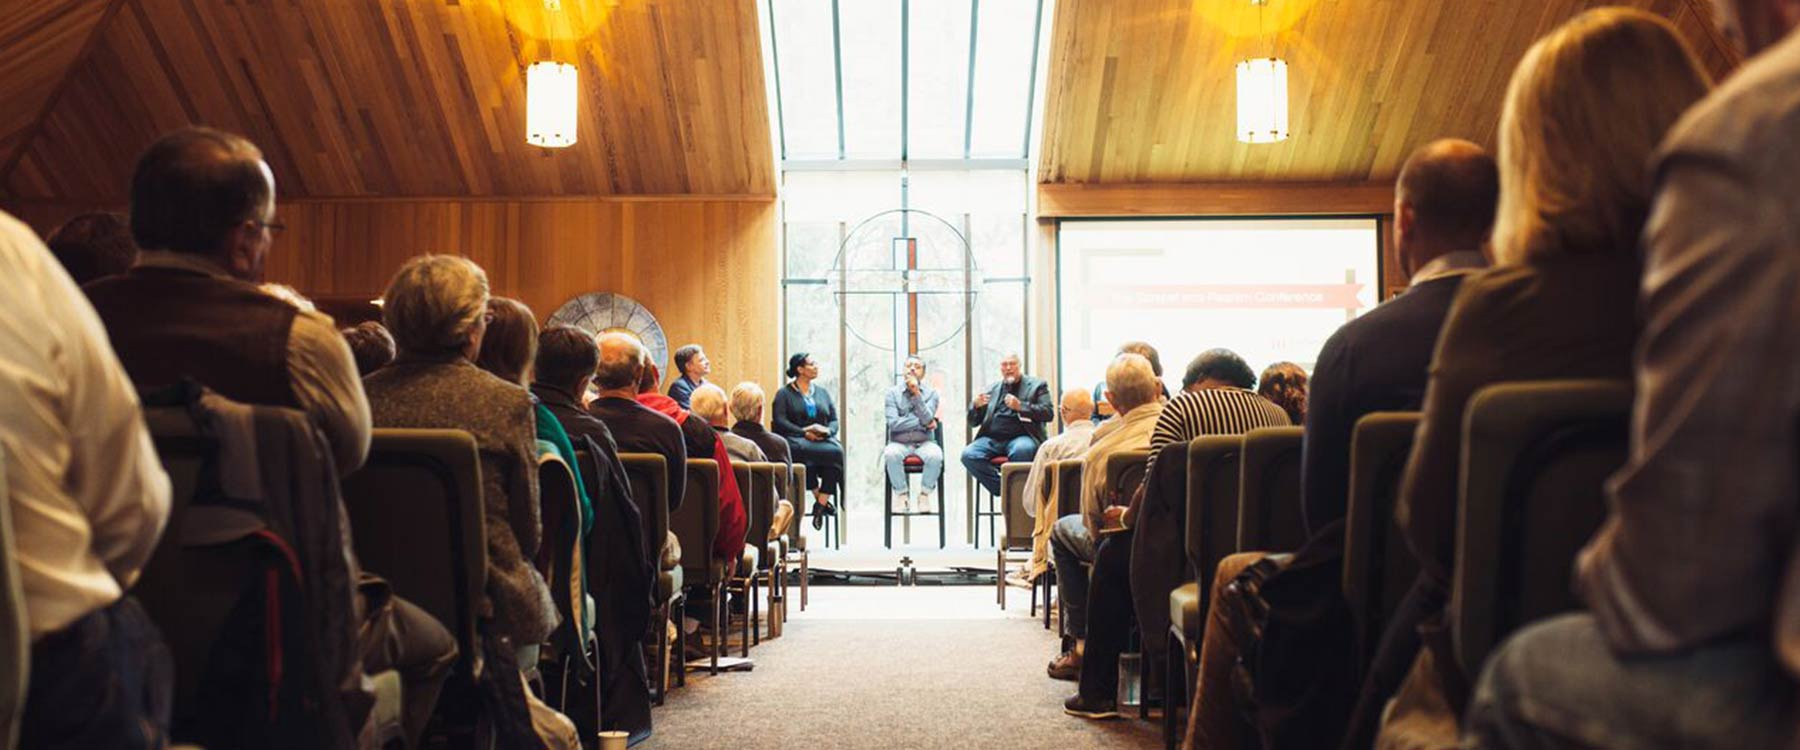 A panel of speakers sits at the front of the university chapel. The rows of seats are filled with listeners.